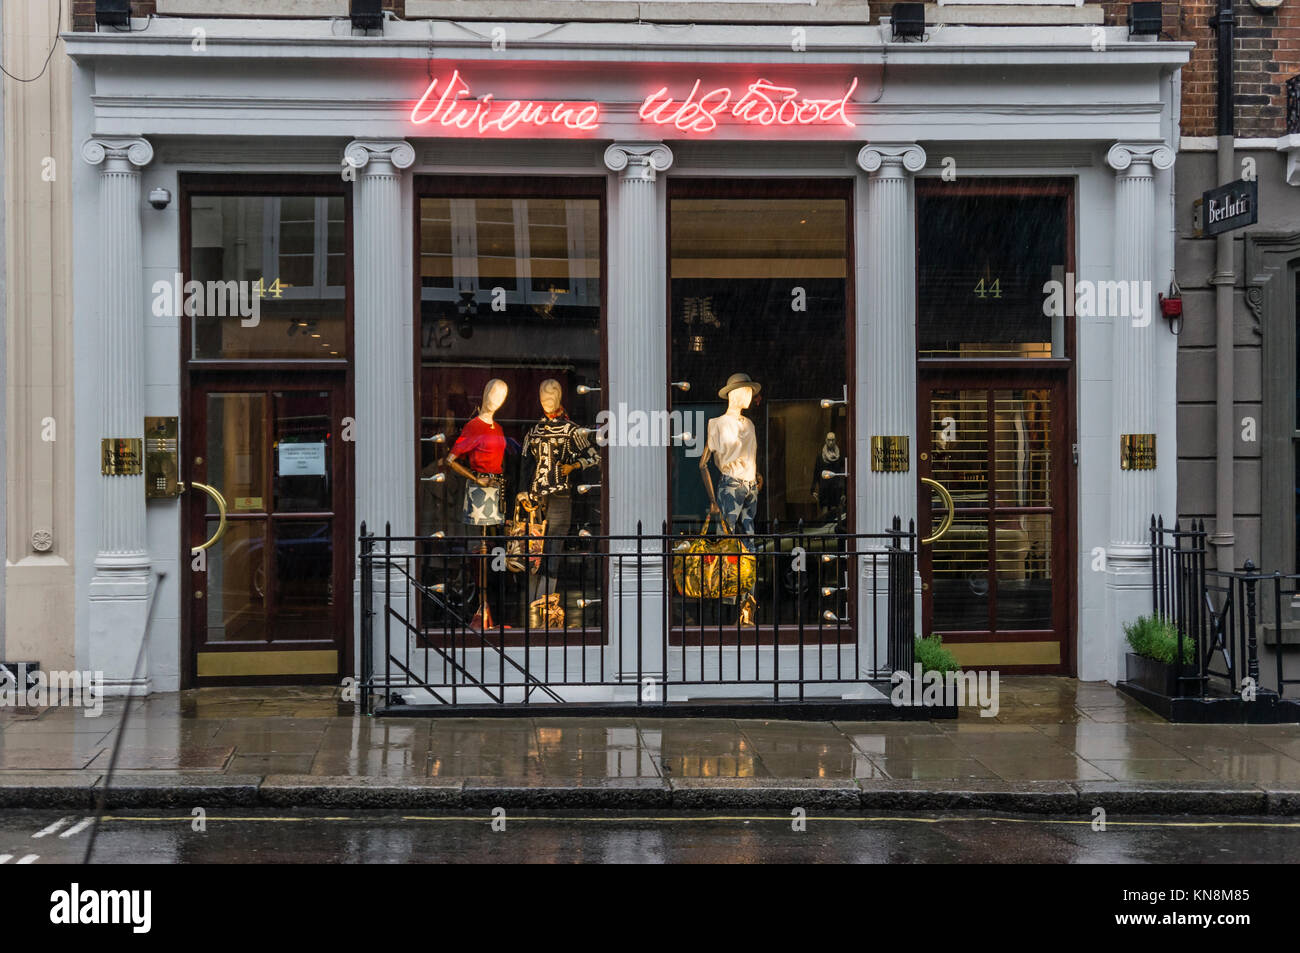 Vivien Westwood, Schaufenster, London, UK Stockbild